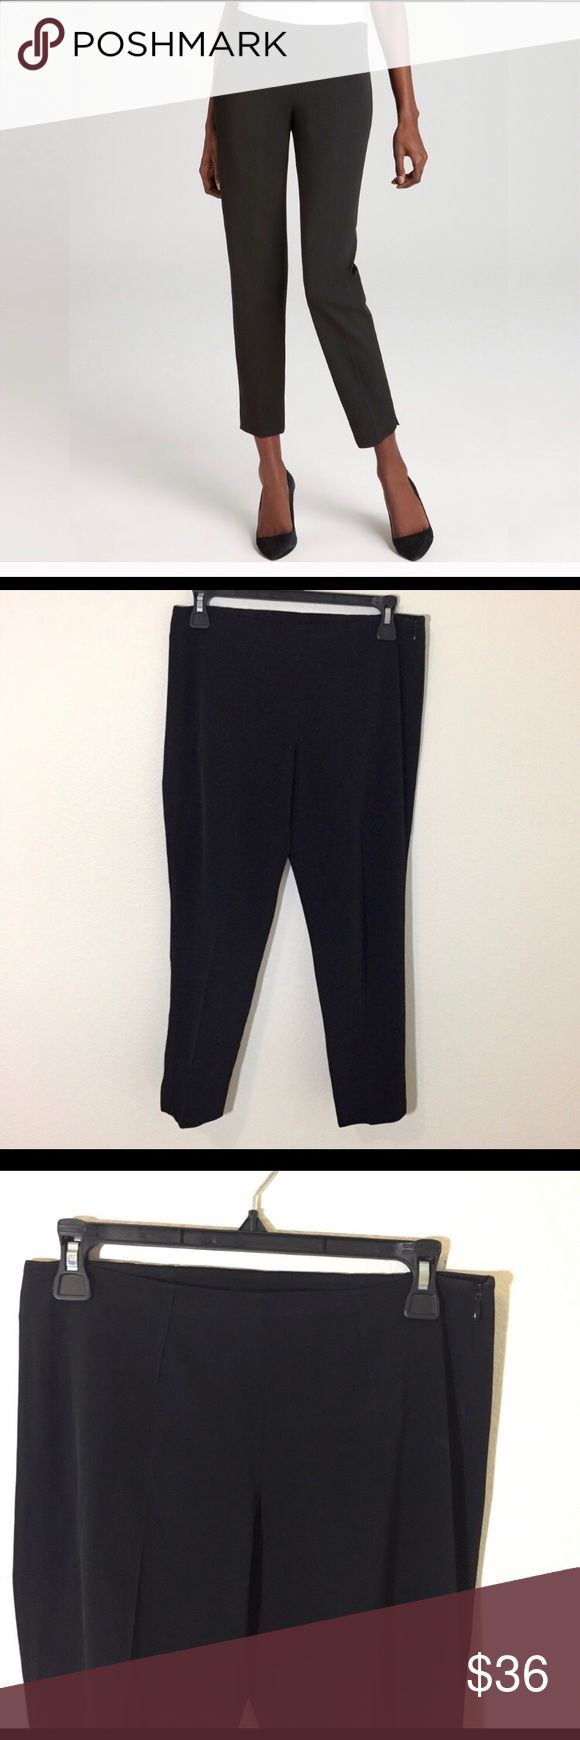 """Theory Belisa Ankle Stretch Dress Pants size 2 Striking pintuck pleats define the sleek waistline of these Balisa pants with their notched, cropped hem.  Super stretchy and comfortable.  You won't mind wearing these all day.  Size 2 Excellent used condition  Inseam 24"""" Theory Pants Ankle & Cropped"""